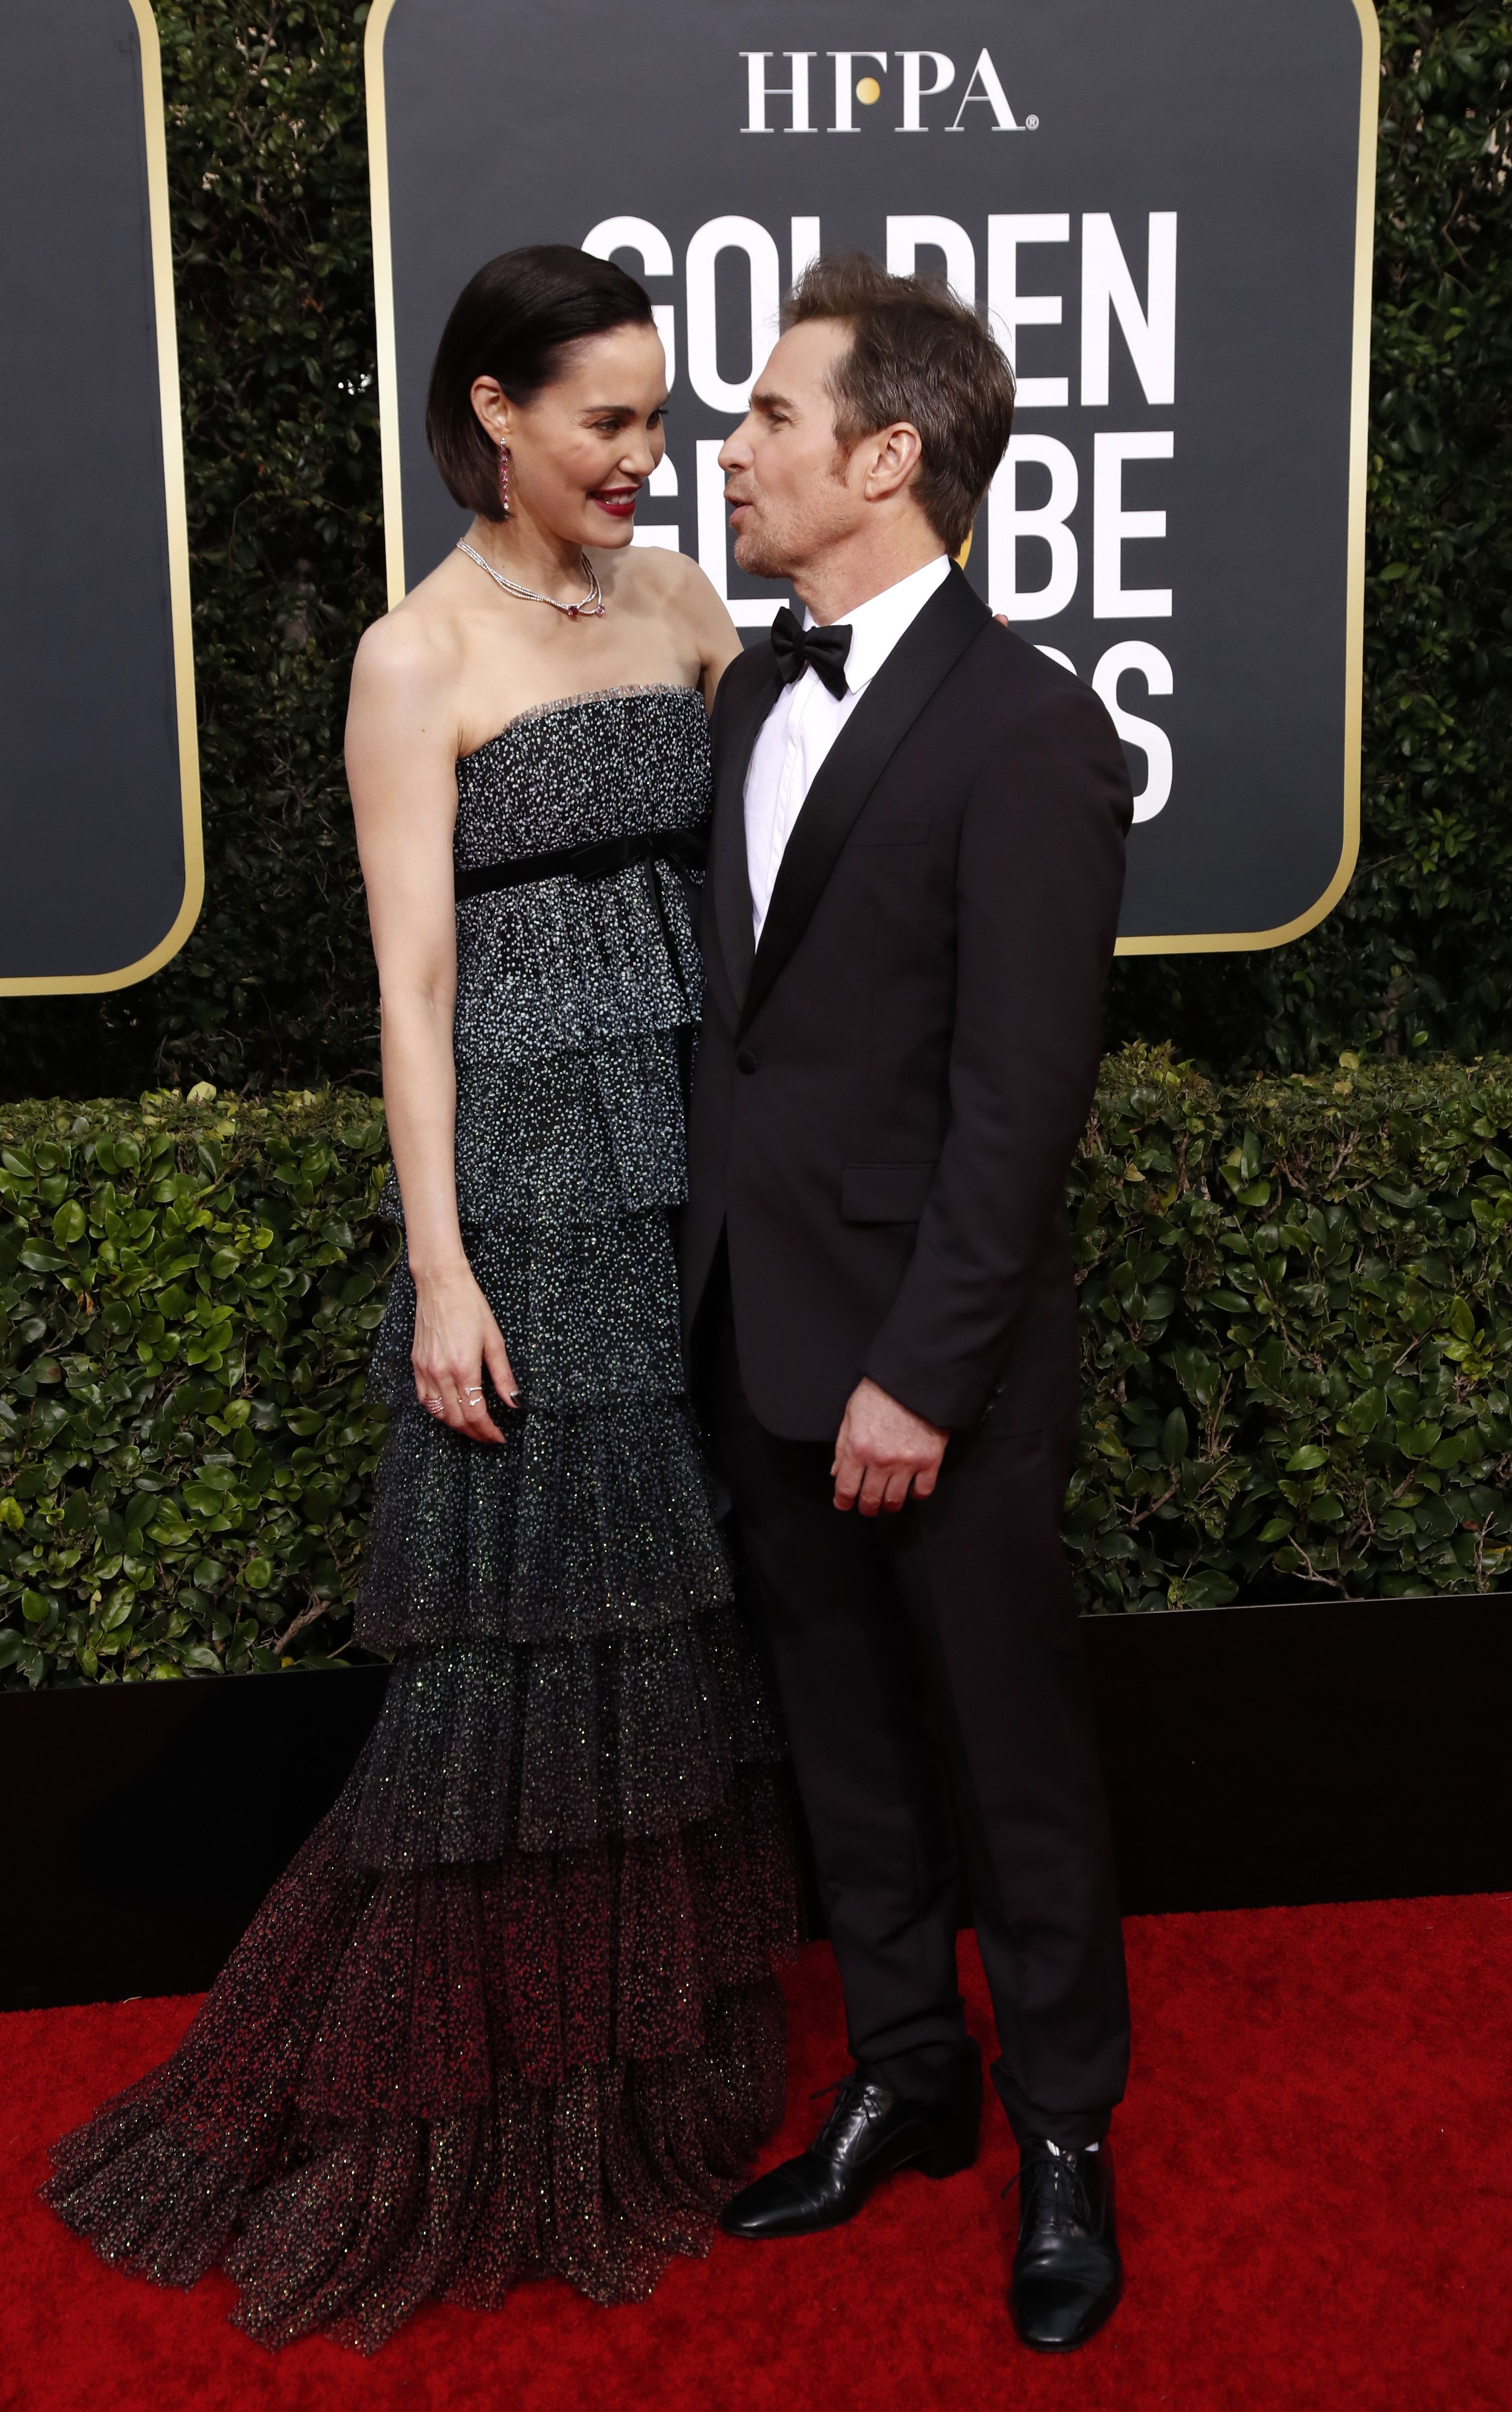 Leslie Bibb (L) and Sam Rockwell arrive for the 77th annual Golden Globe Awards ceremony at the Beverly Hilton Hotel, in Beverly Hills, California, USA, 05 January 2020.Arrivals - 77th Golden Globe Awards, Beverly Hills, USA - 05 Jan 2020